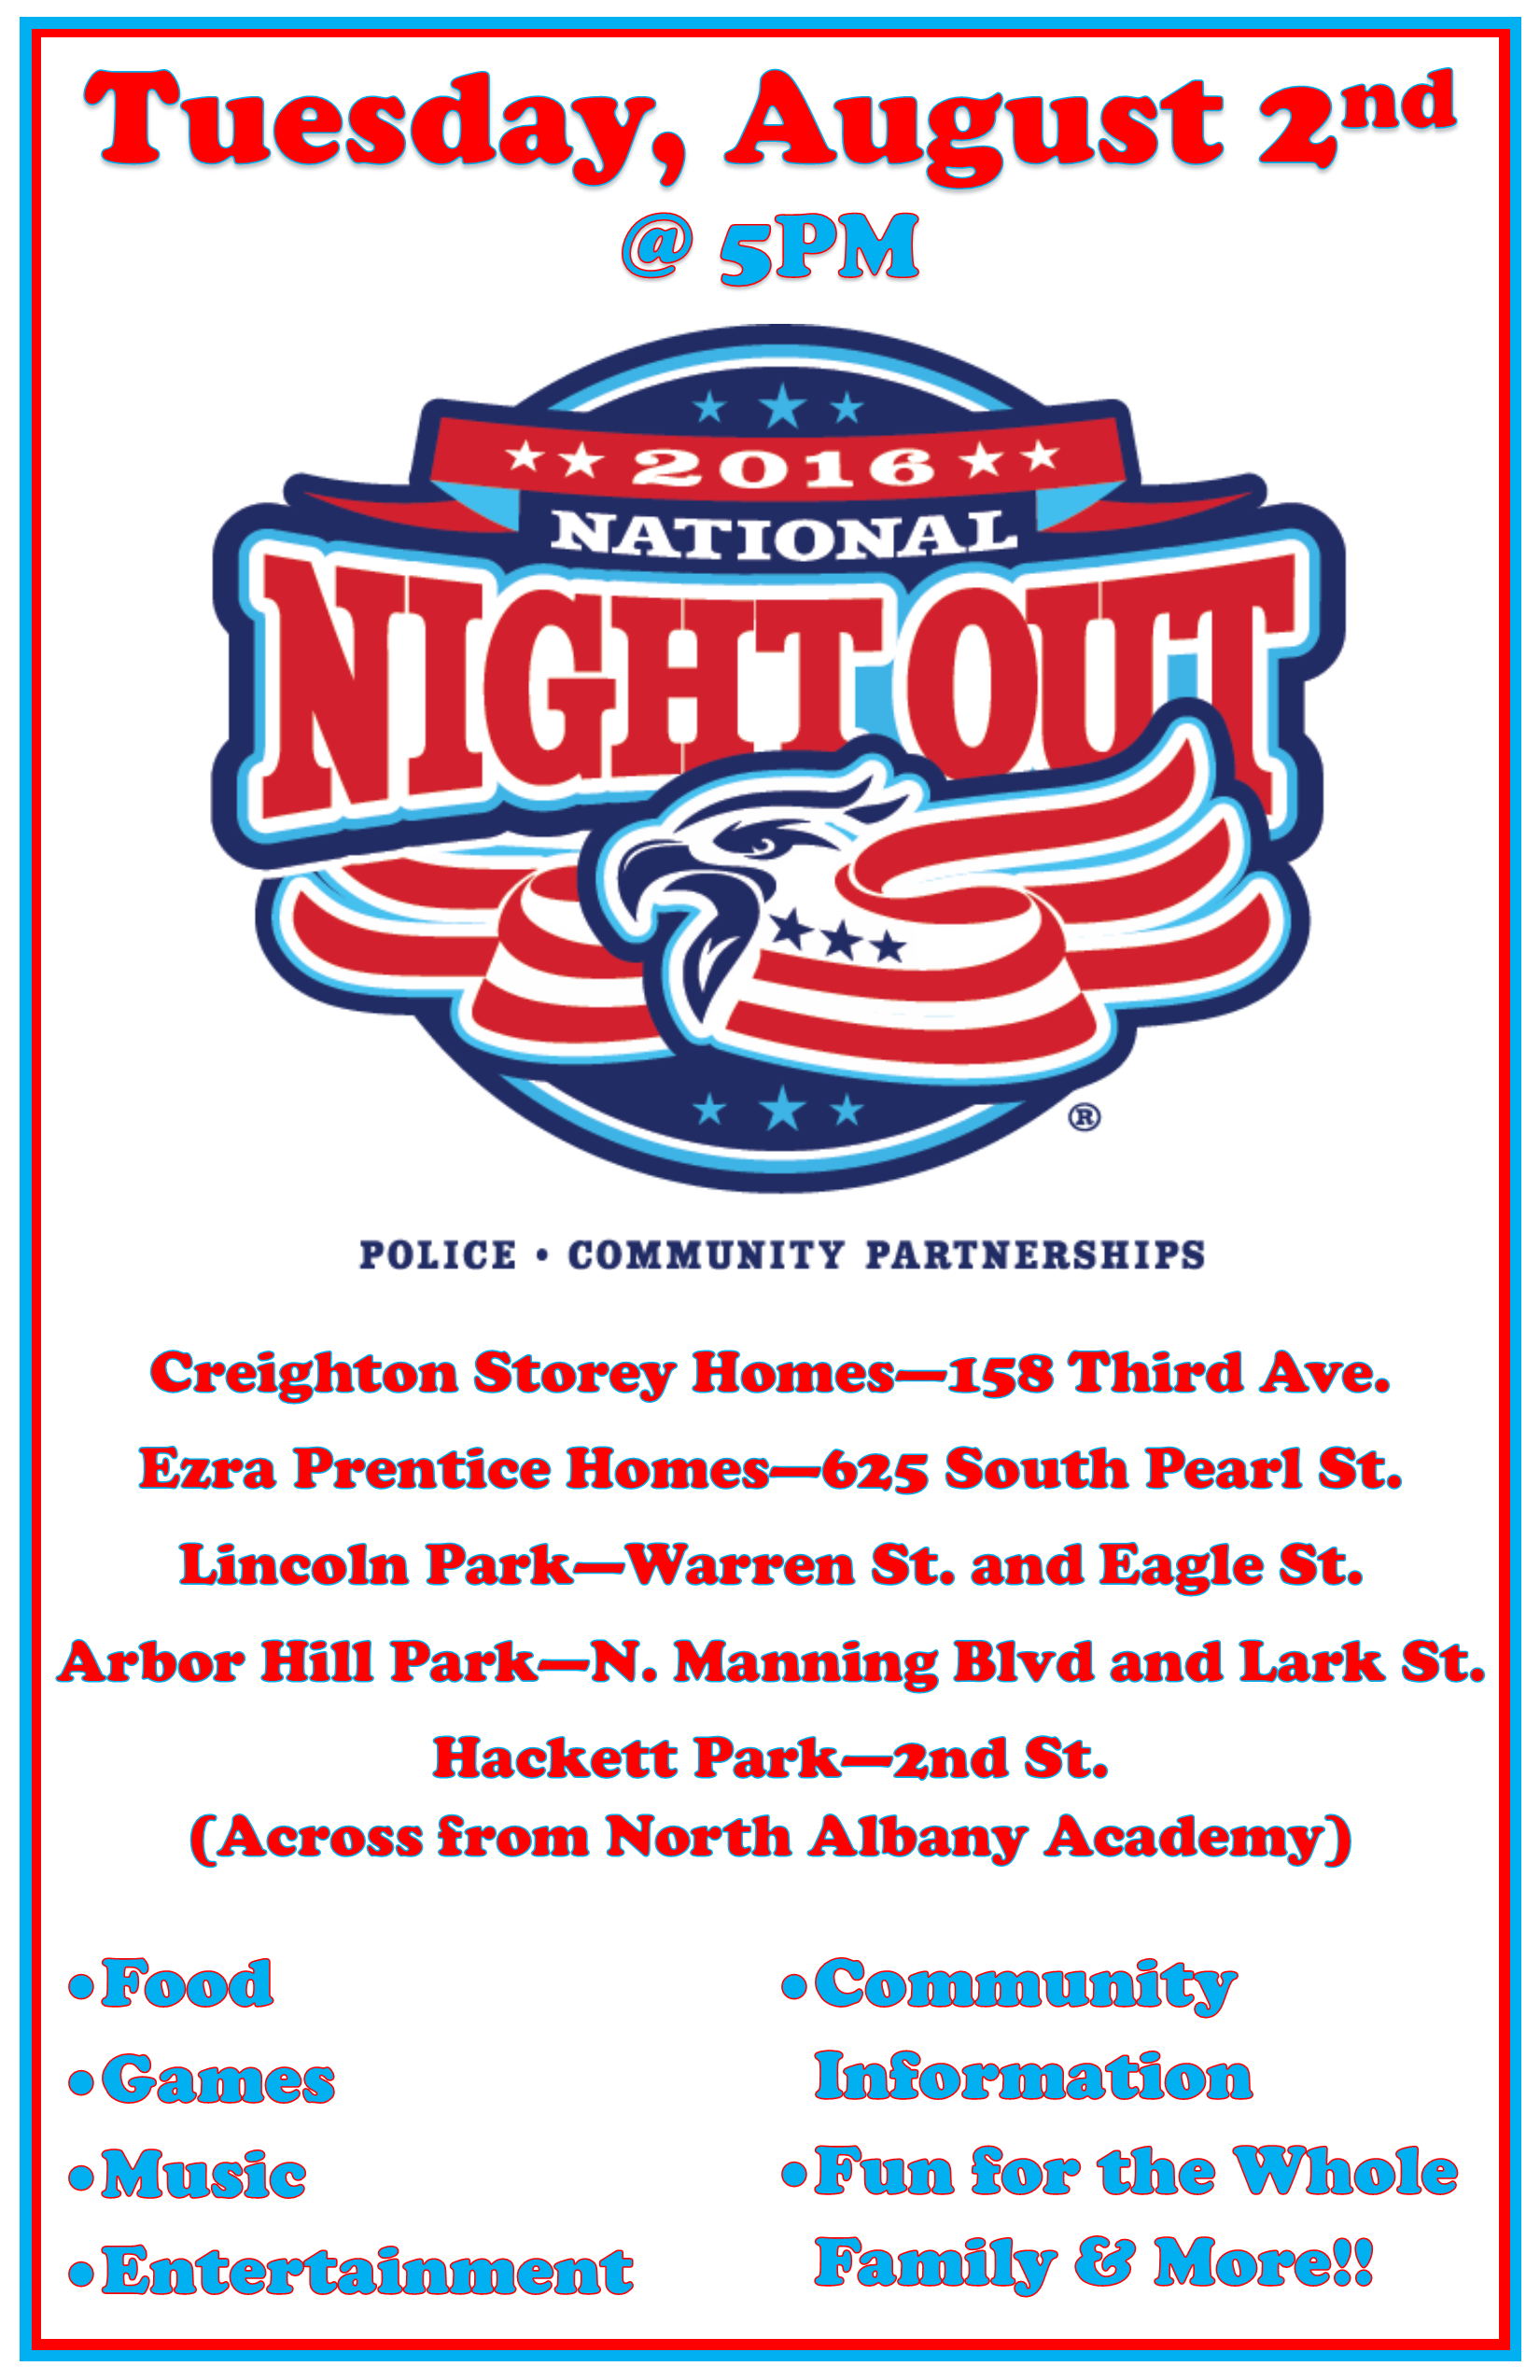 National Night Out 2016 Flyer